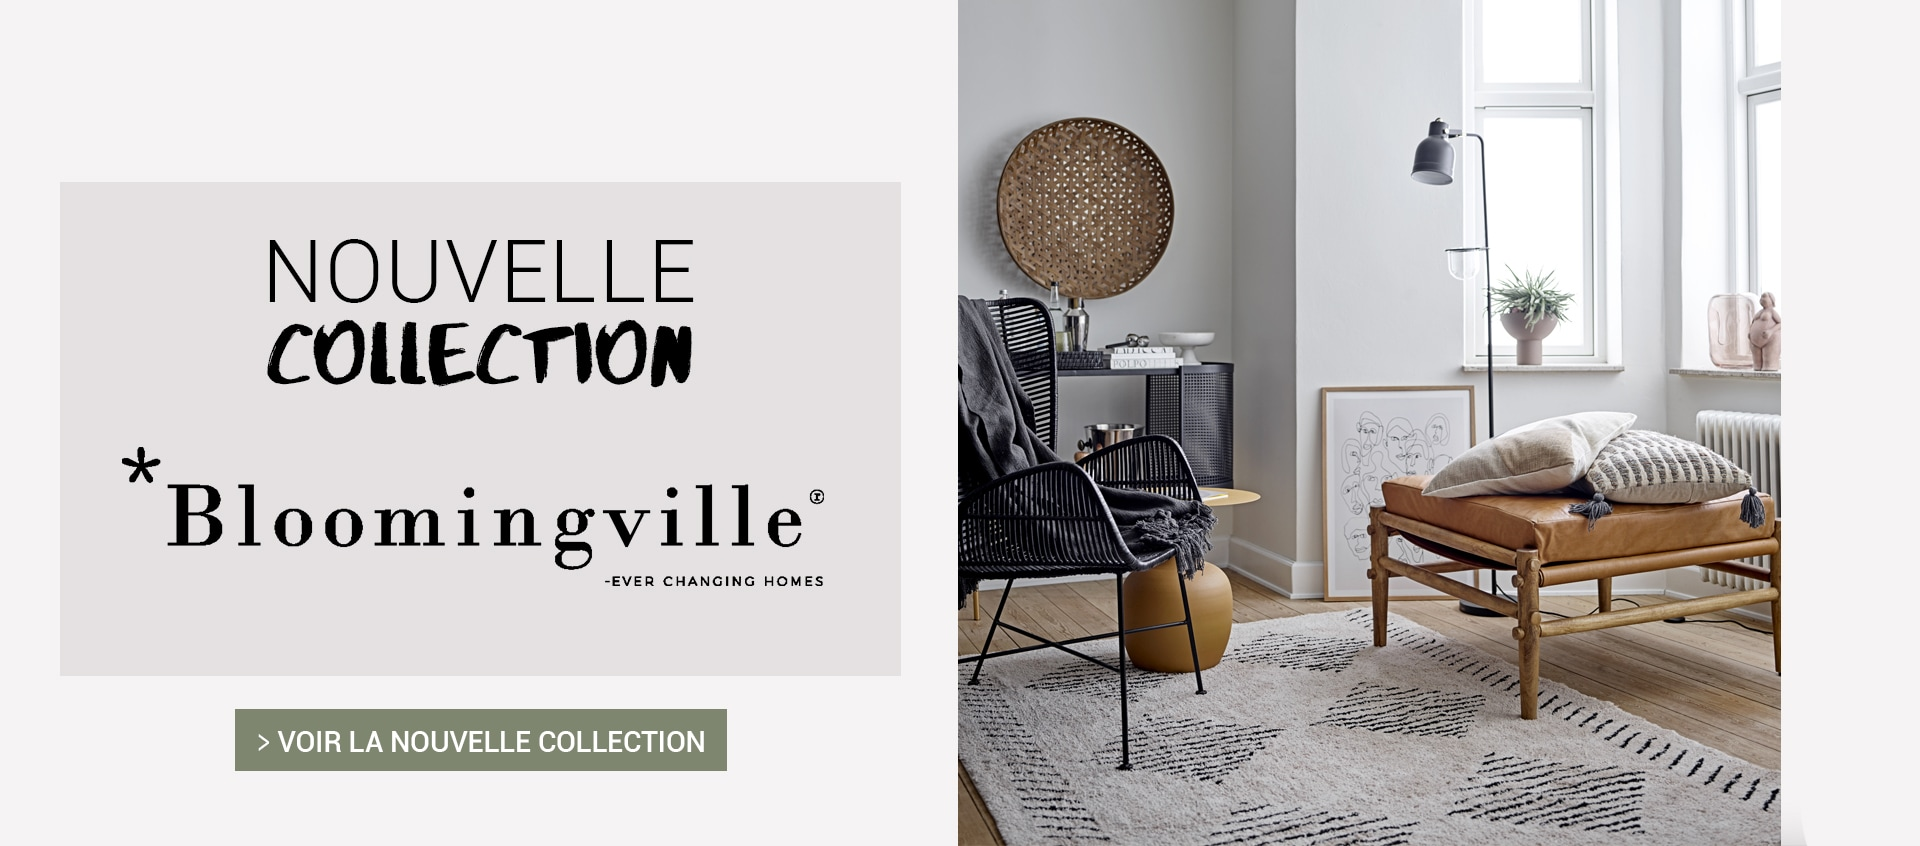 Nouvelle Collection Bloomingville